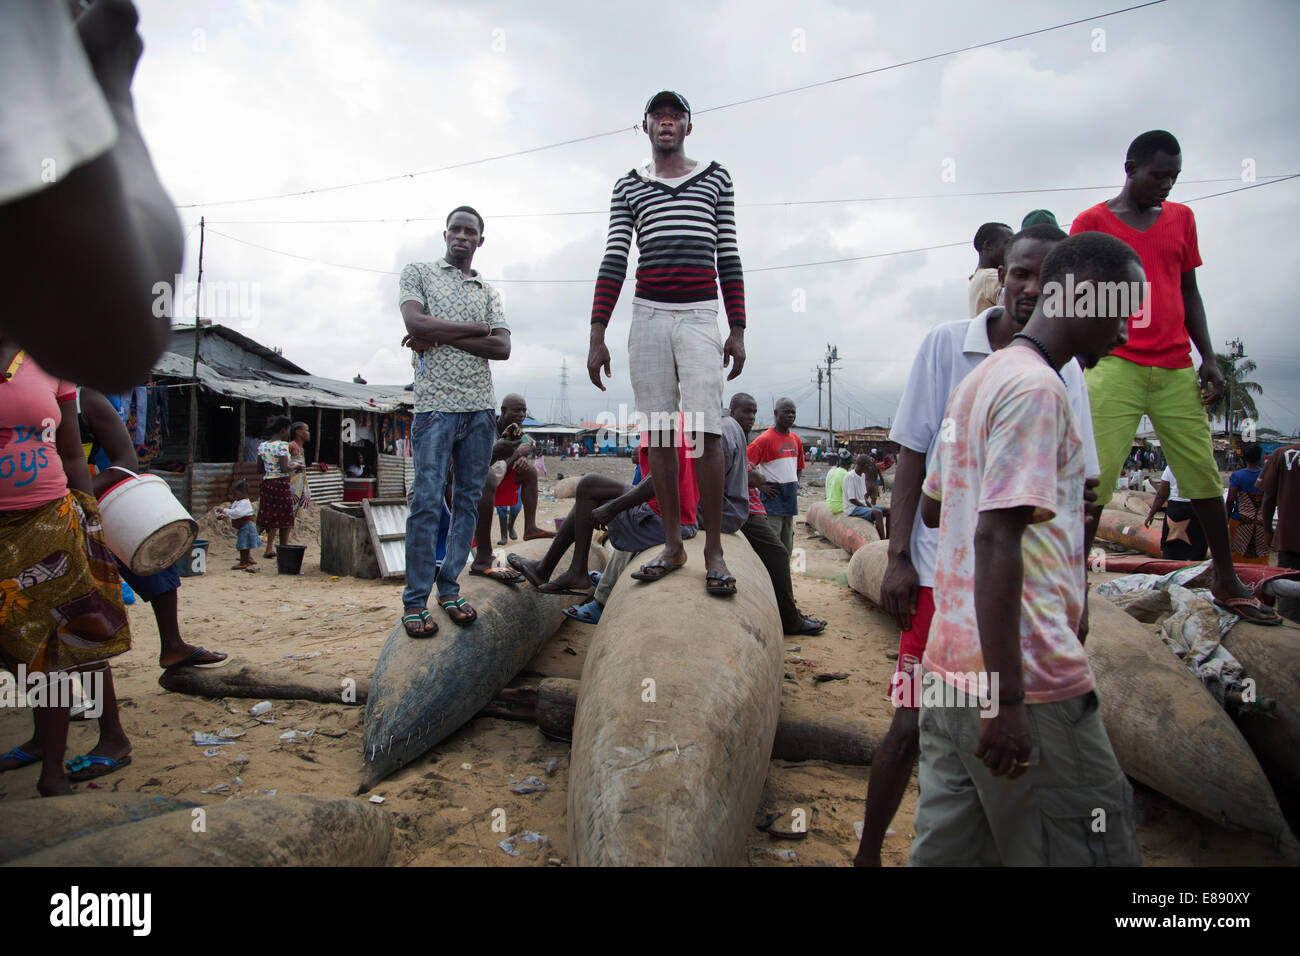 Fisherman in the Monrovian township of West Point in Liberia. Fisherman in West Point are suspected of bringing - Stock Image